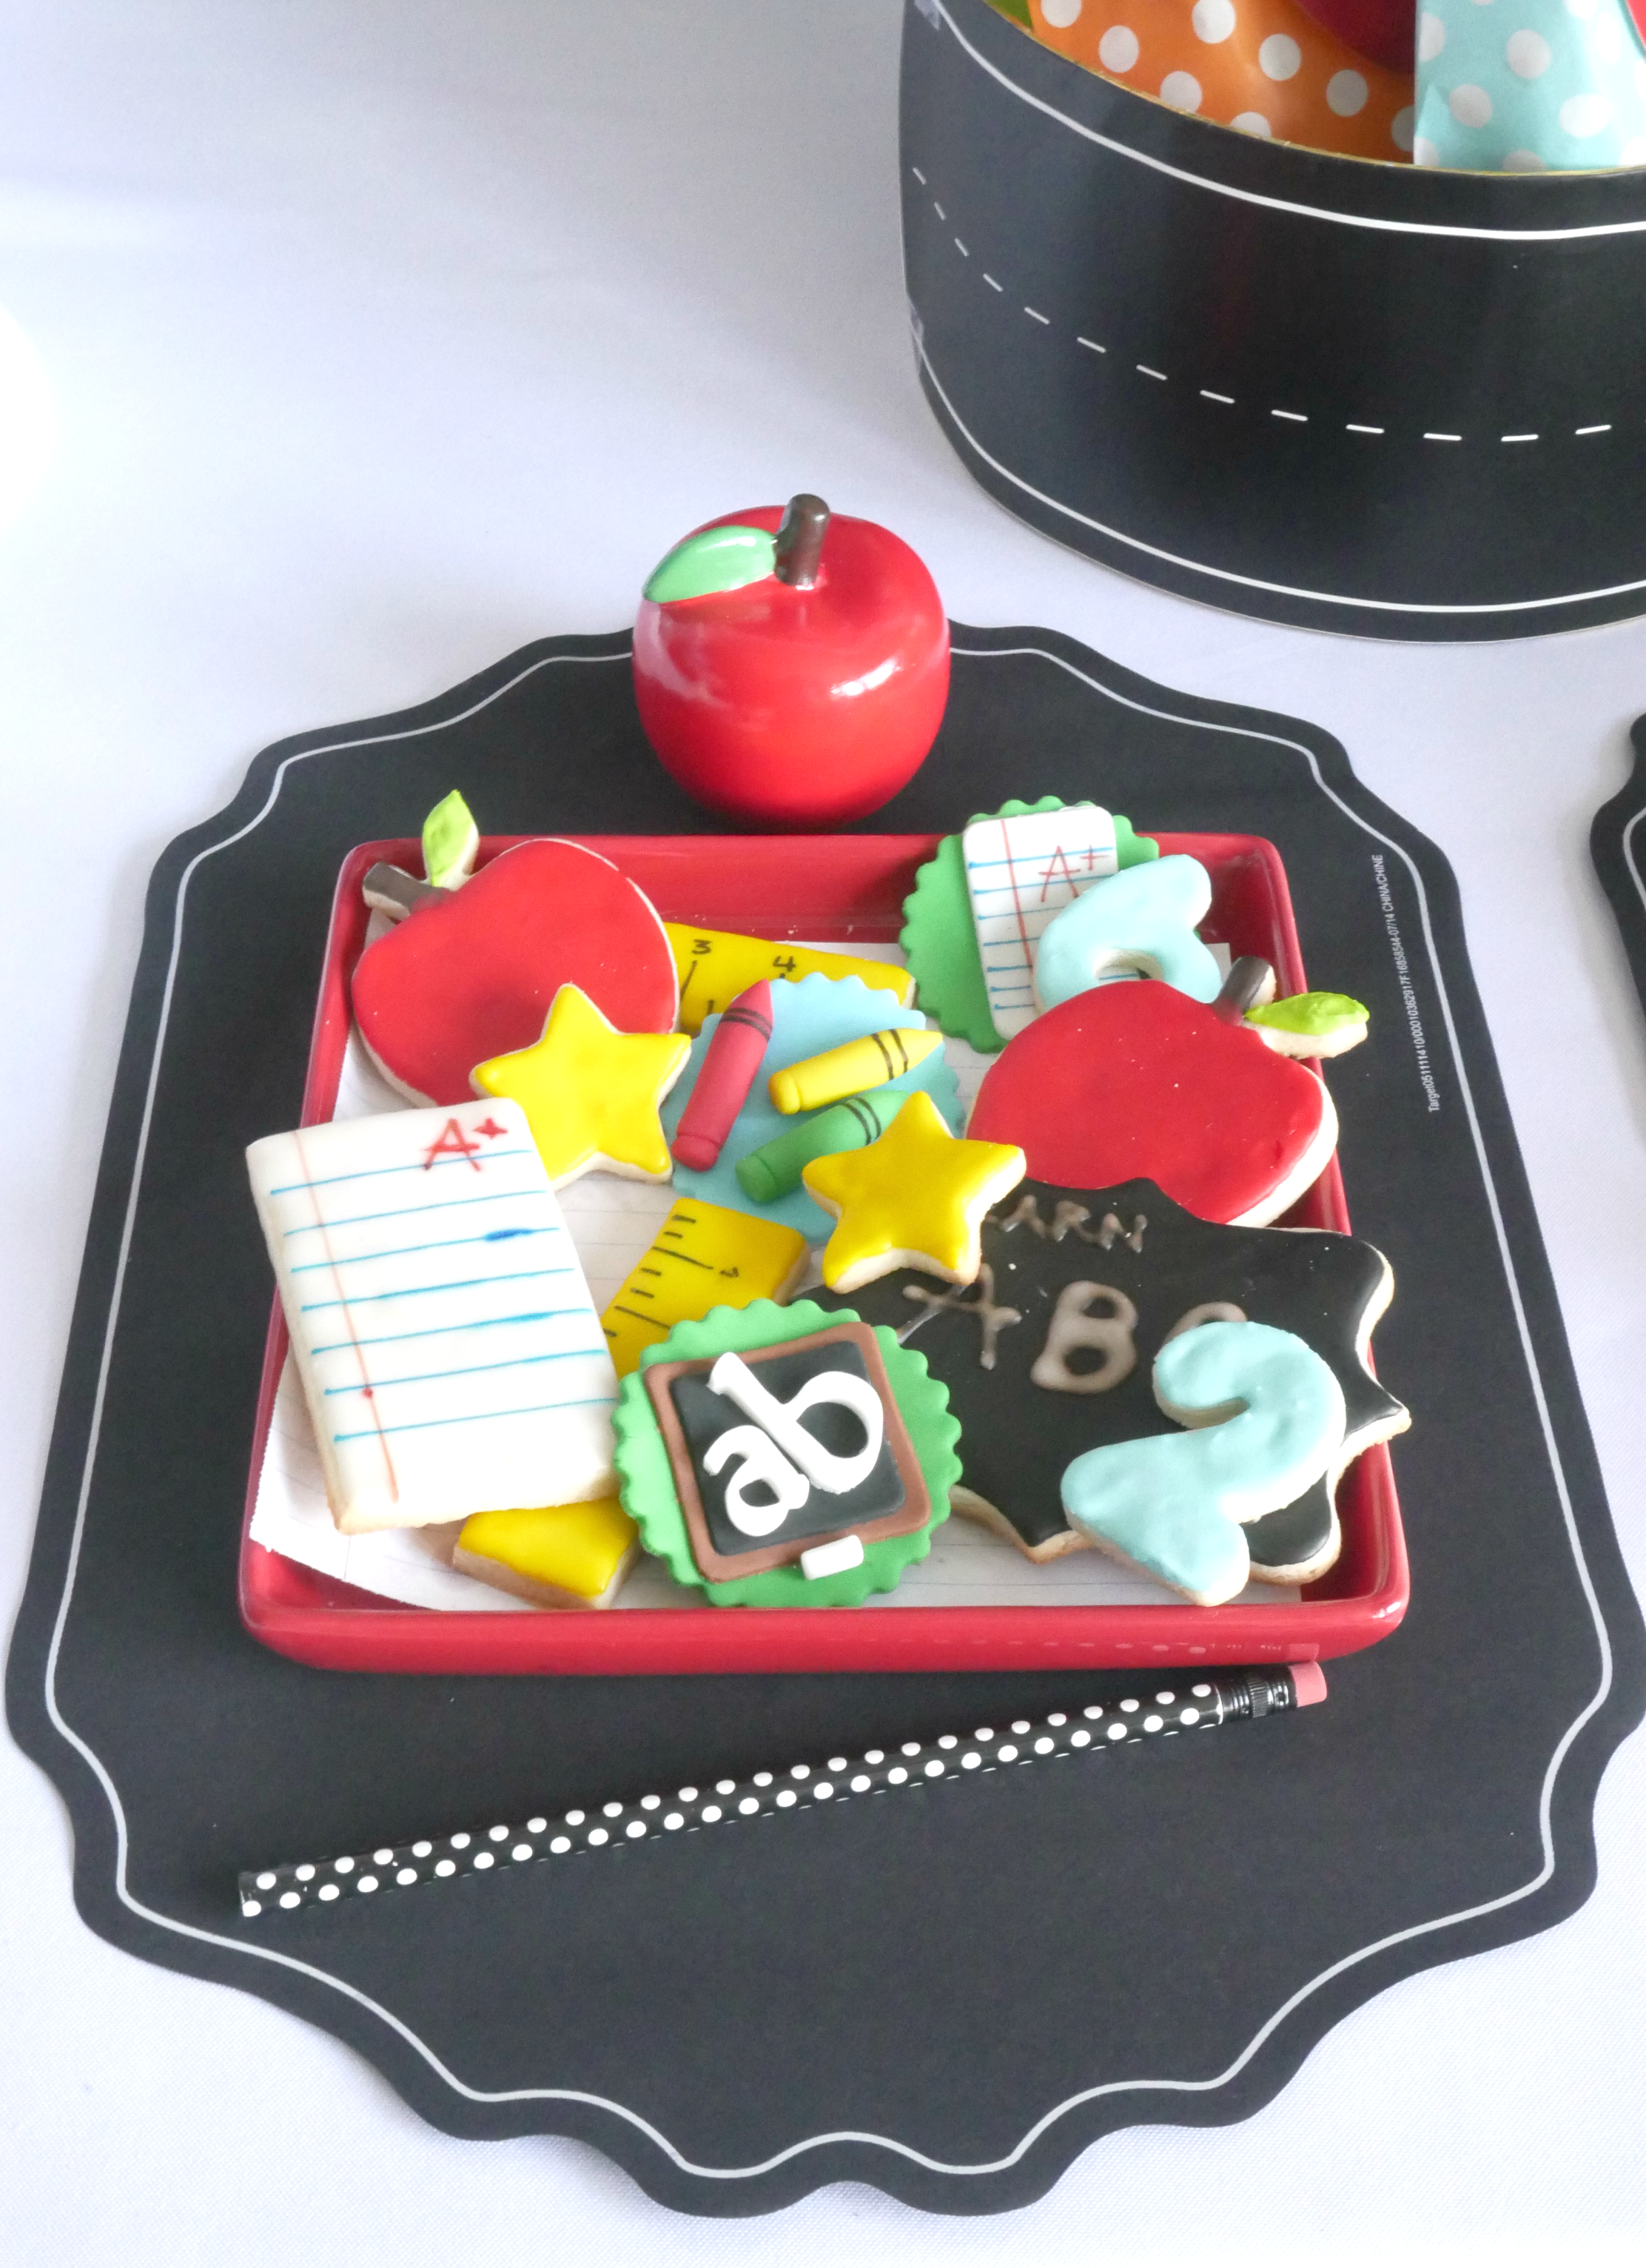 Detailed frosted cookies perfect for a back to school party. Cookies shaped like apples, numbers, letters and more. See all the details on Mint Event Design www.minteventdesign.com #backtoschool #backtoschoolideas #kidsparty #kidspartyideas #kidsparties #cookieideas